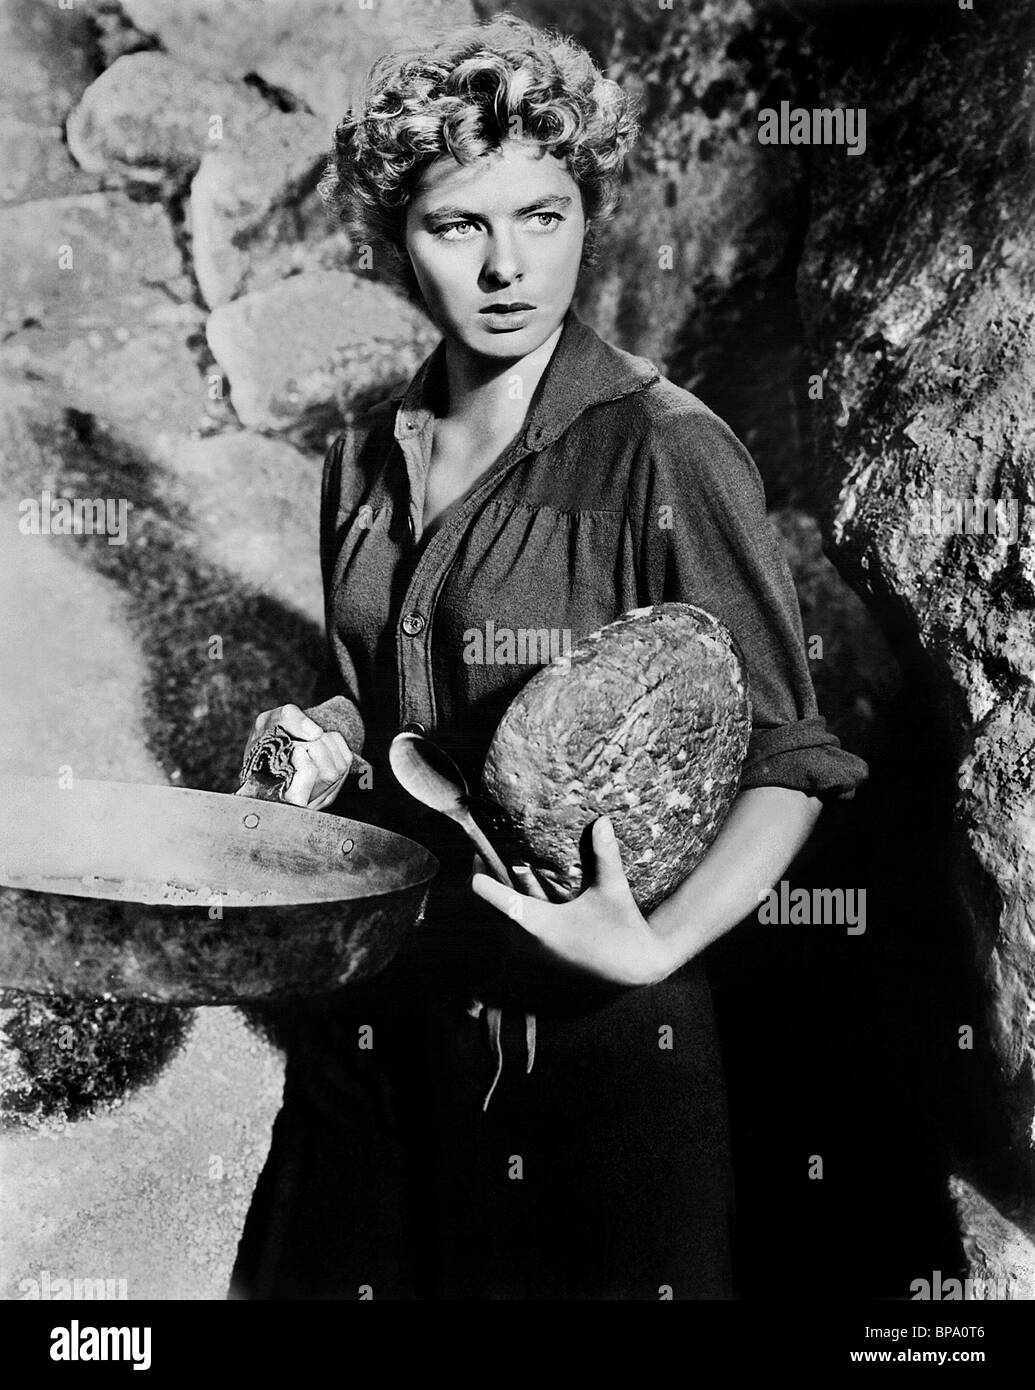 INGRID BERGMAN FOR WHOM THE BELL TOLLS (1943) - Stock Image